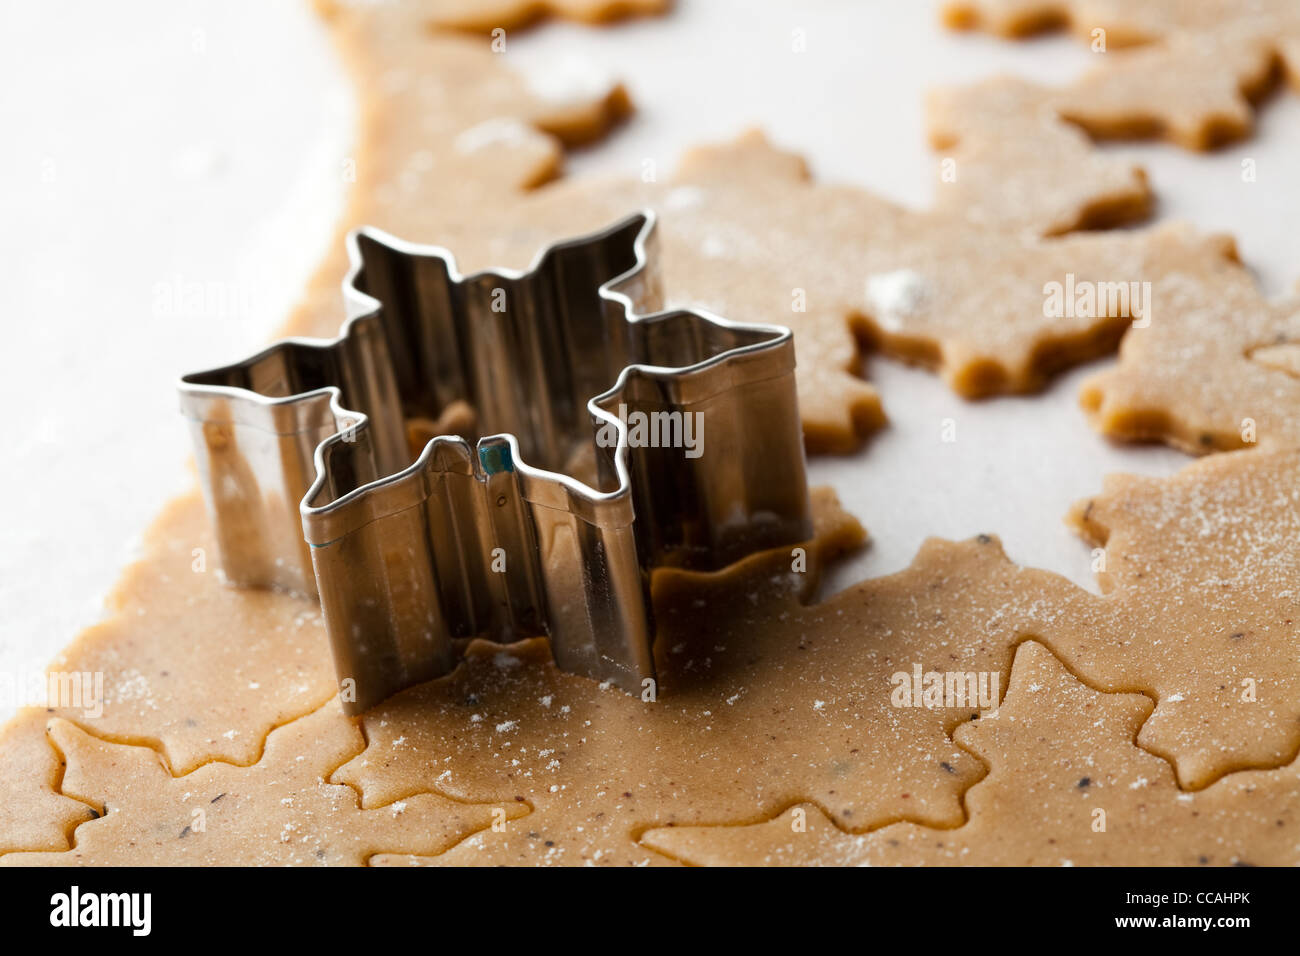 Making gingerbread cookies for Christmas. Gingerbread dough with star shapes and a cutter. - Stock Image